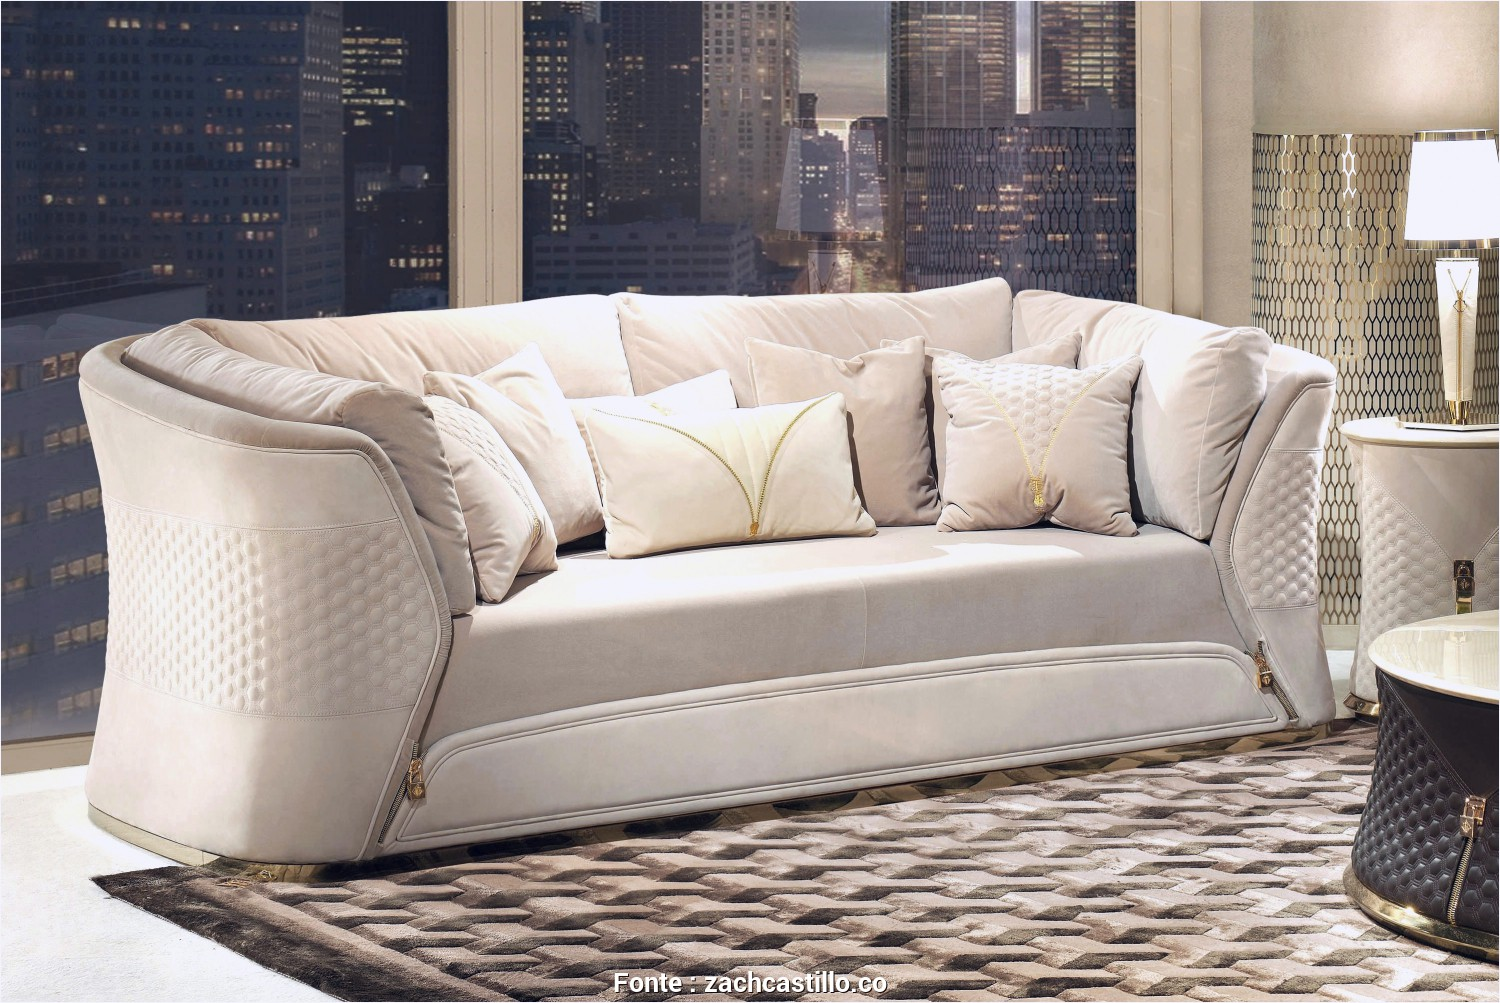 Poltrone Sofa Divani Scontati, Fantasia Beautiful, Luxury Poltrone Sofa Unfor Table Living Room Vogue Collection E Turri It Italian, With Offerte Divani Poltrone Sofa